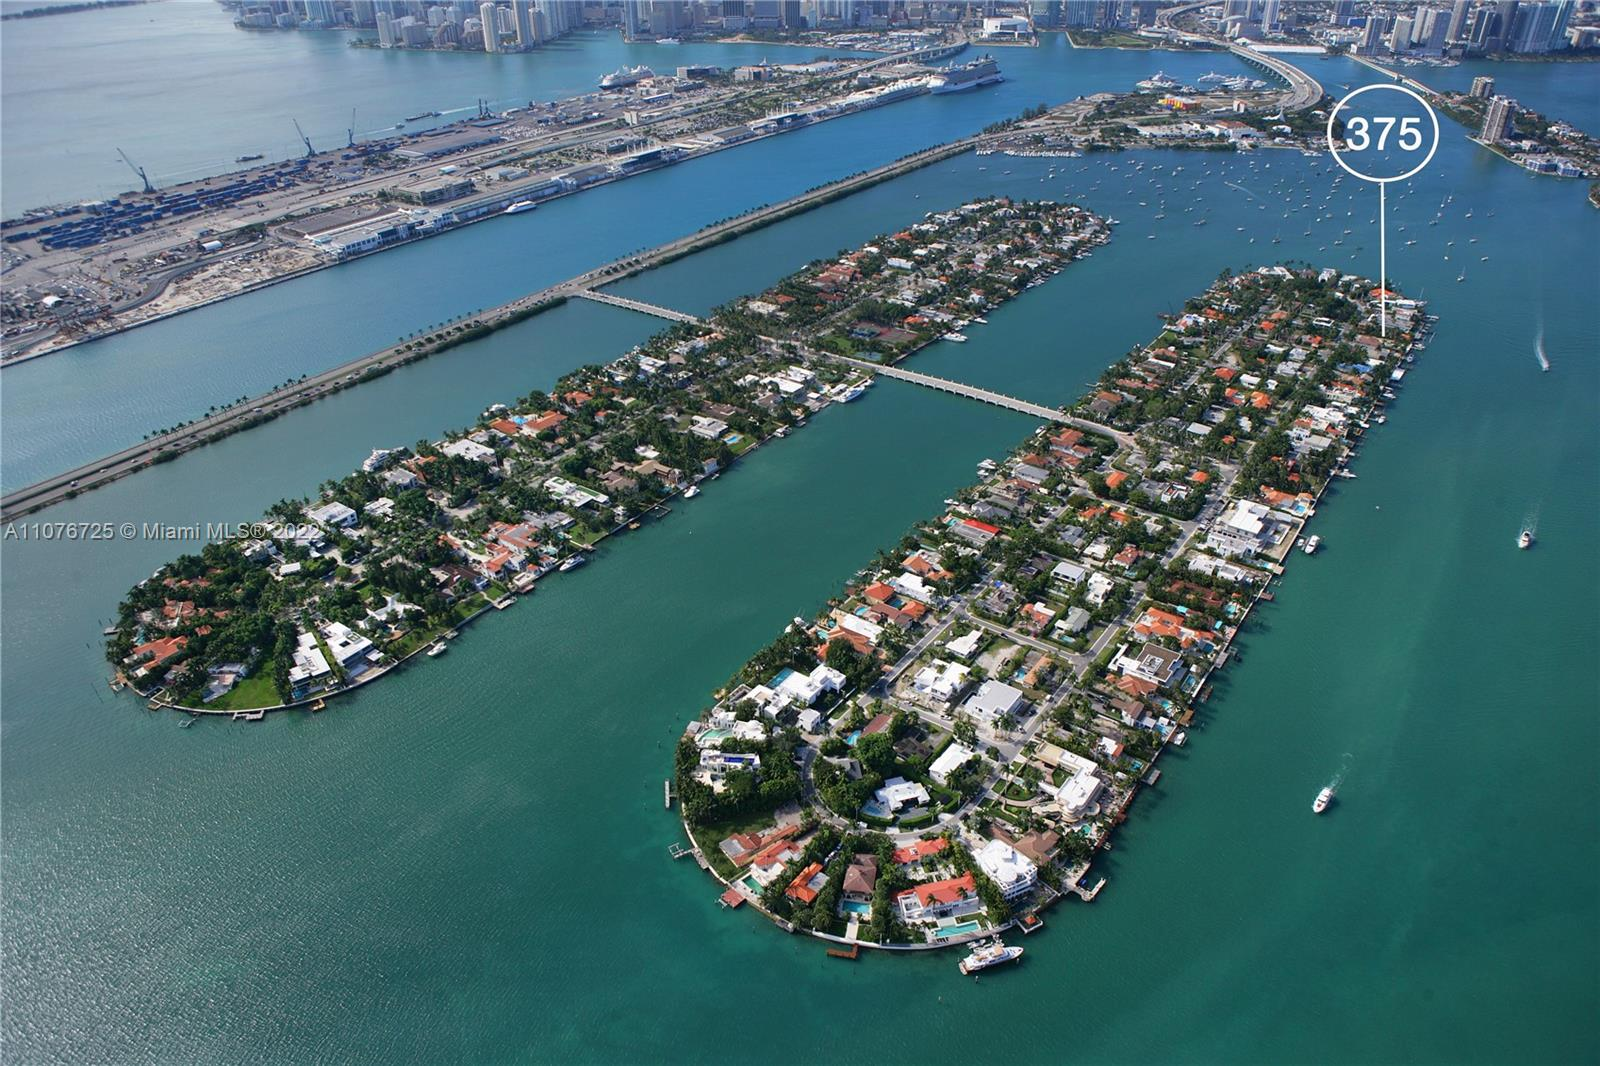 Ultra-luxury waterfront on Hibiscus Island offering serene views of the bay and Edgewater skyline, developed in collaboration by Artefacto Miami & Todd M. Glaser with modern architecture by Kobi Karp and interior designed + staging by Artefacto Miami! To maximize use of the deep 175-foot lot, the home will have a main house sited by the 90-FT waterfrontage & a guesthouse with 3-car garage on the front, connected with a courtyard!  Inside the 7,869-SF, 8-Bed 9.5-bath home, exceptional living areas overflowed with water views, gourmet kitchen, master suite suited for royalty, superior finishes, deluxe baths, high ceilings. Outside, pool, cabana, summer kitchen, new elevated seawall and a large dock for docking multiple boats. A secluded paradise in the heart of Miami Beach. Completion 2022!